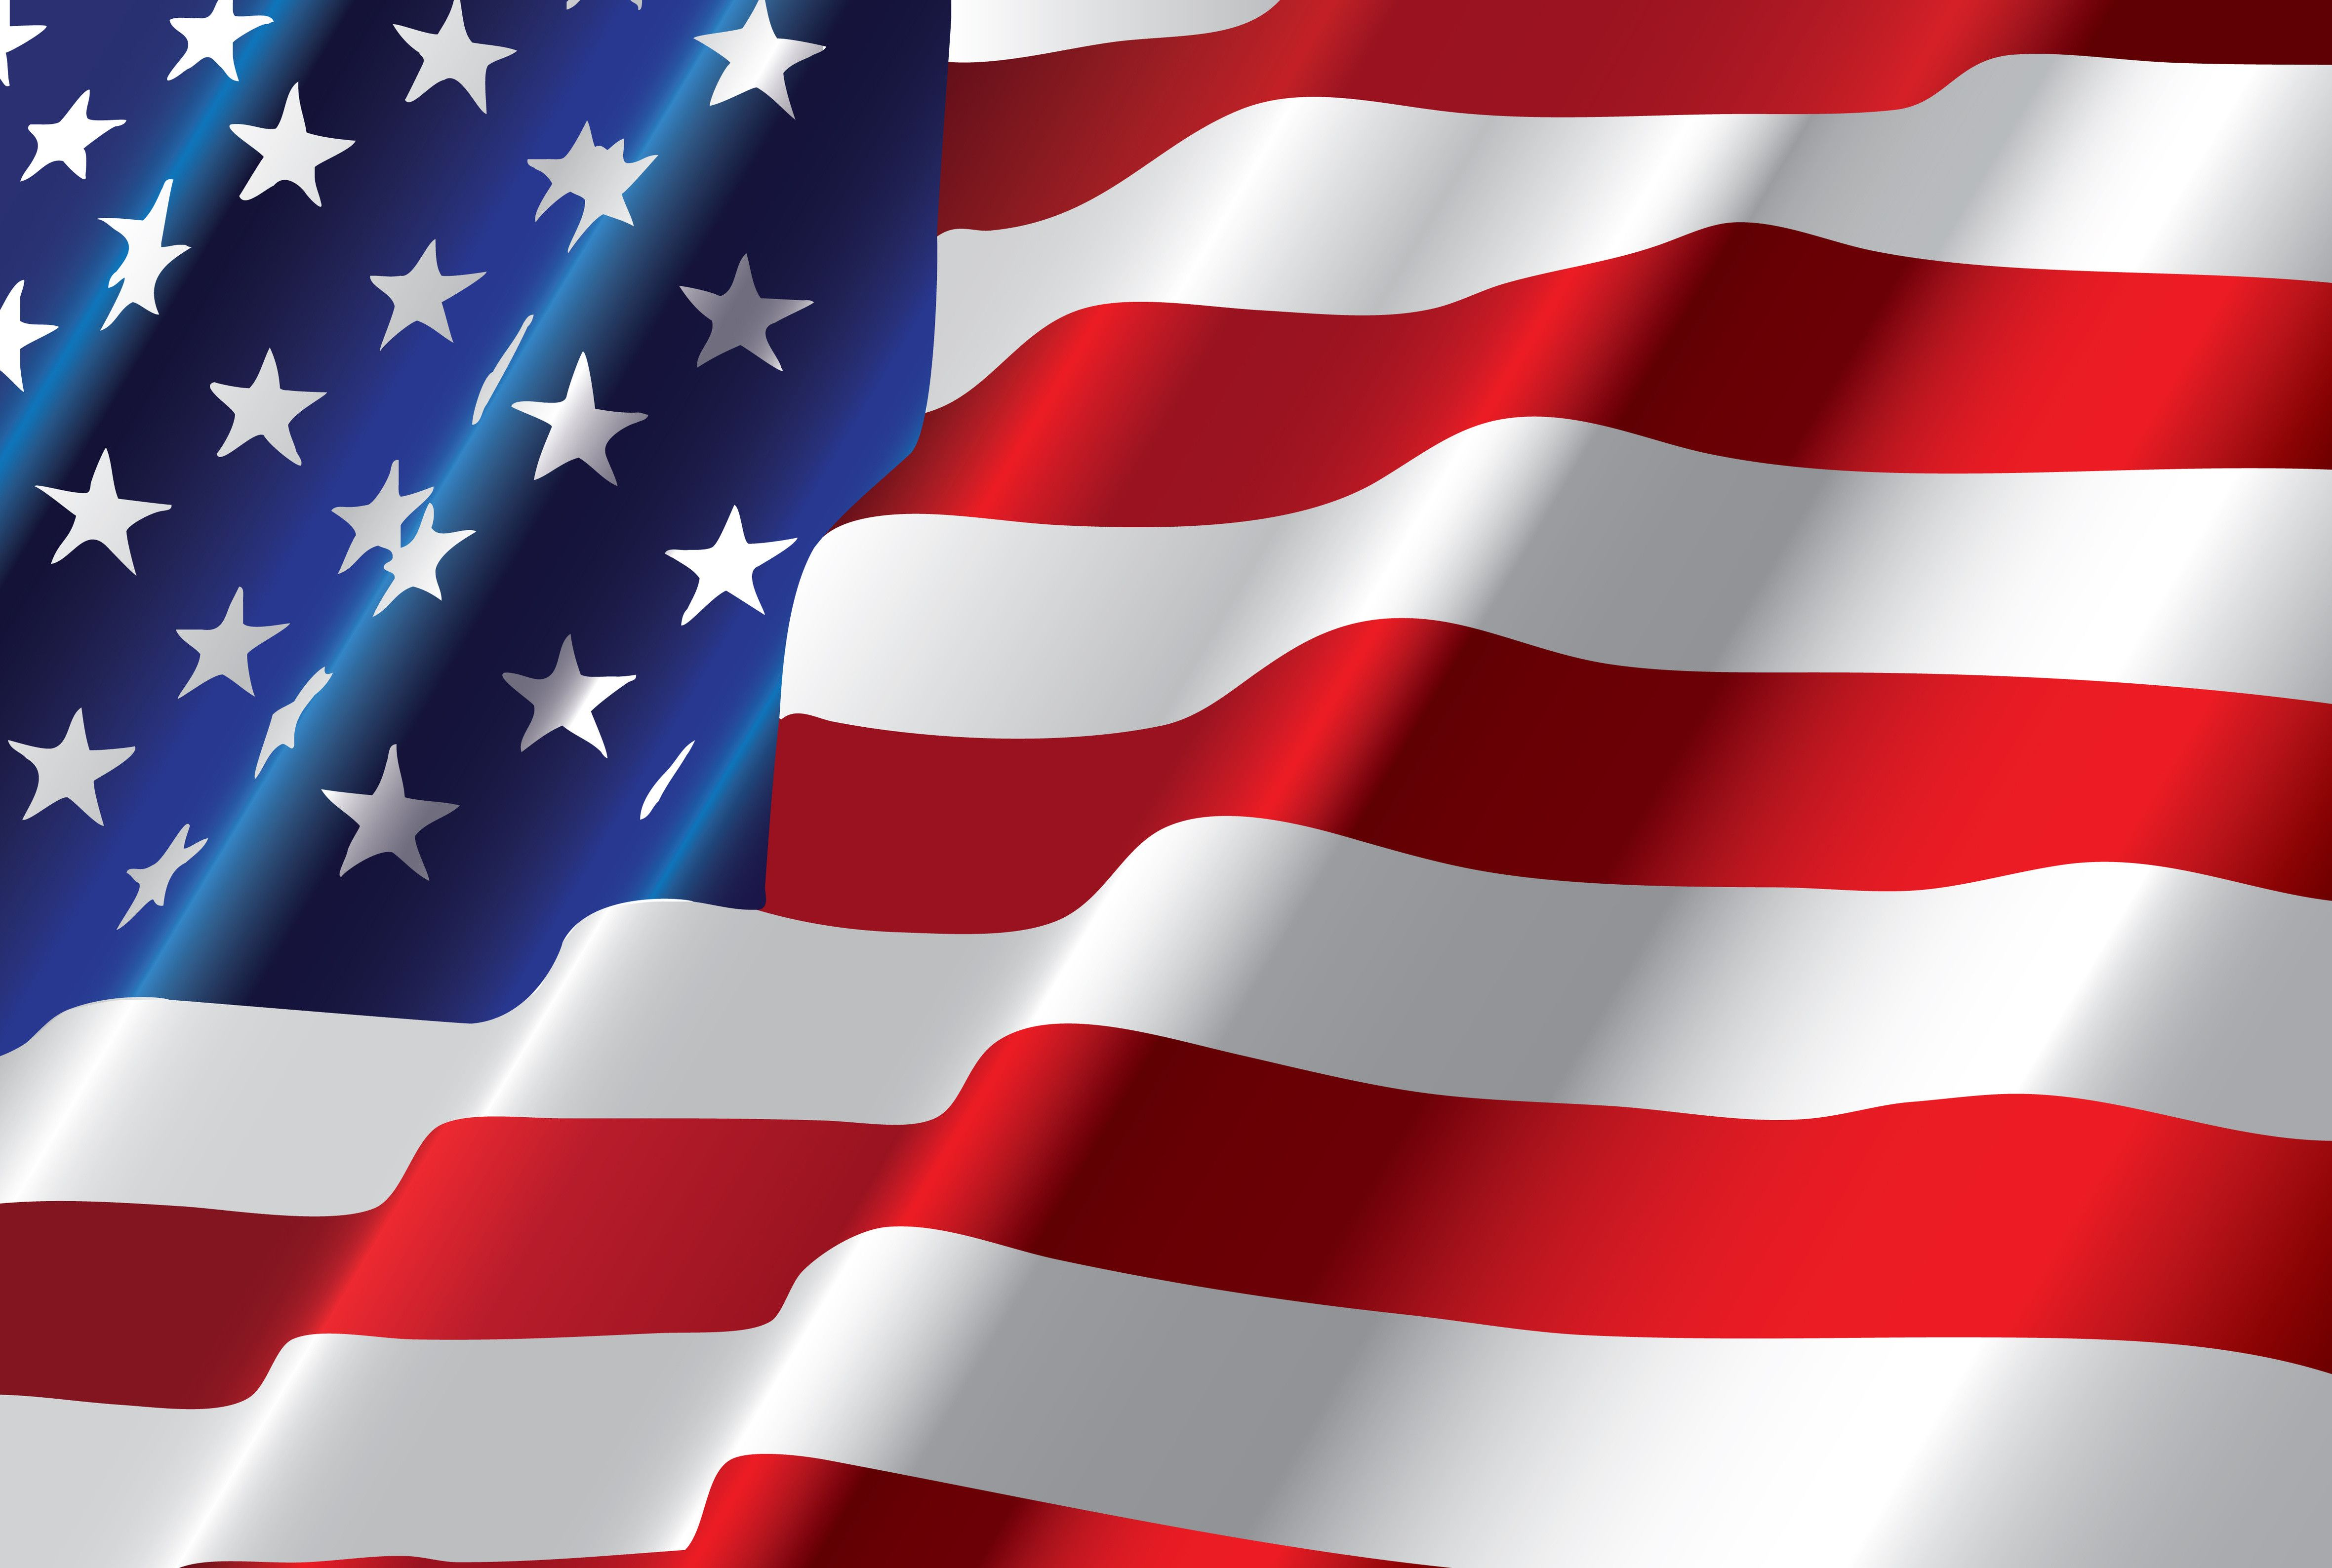 American Flag Wallpapers and Background 4722x3176